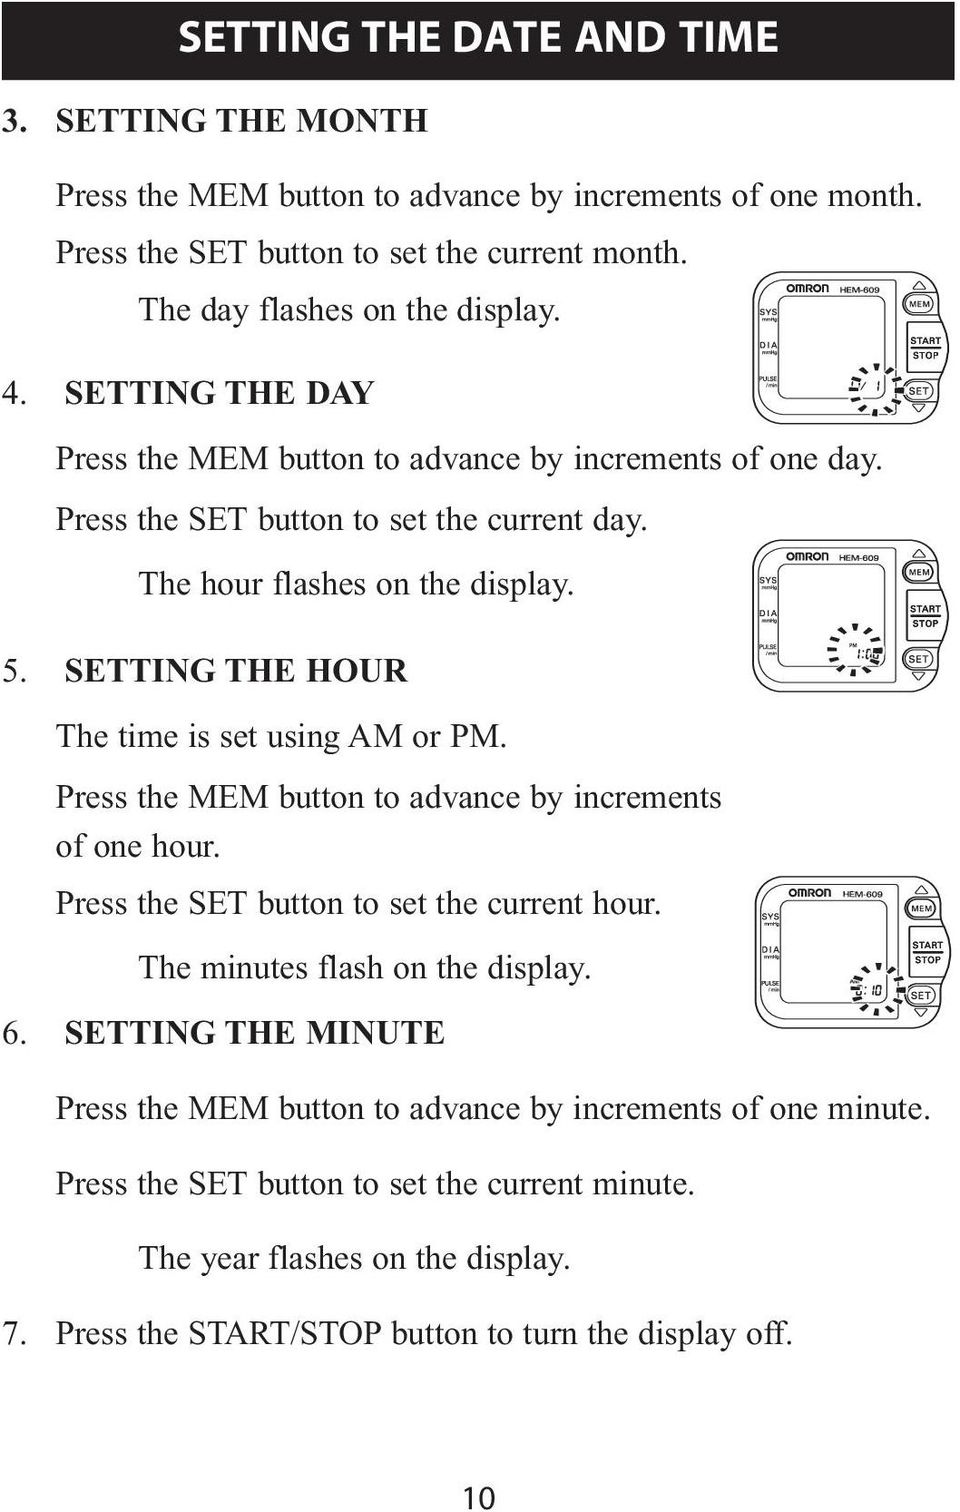 SETTING THE HOUR The time is set using AM or PM. Press the MEM button to advance by increments of one hour. Press the SET button to set the current hour. The minutes flash on the display.